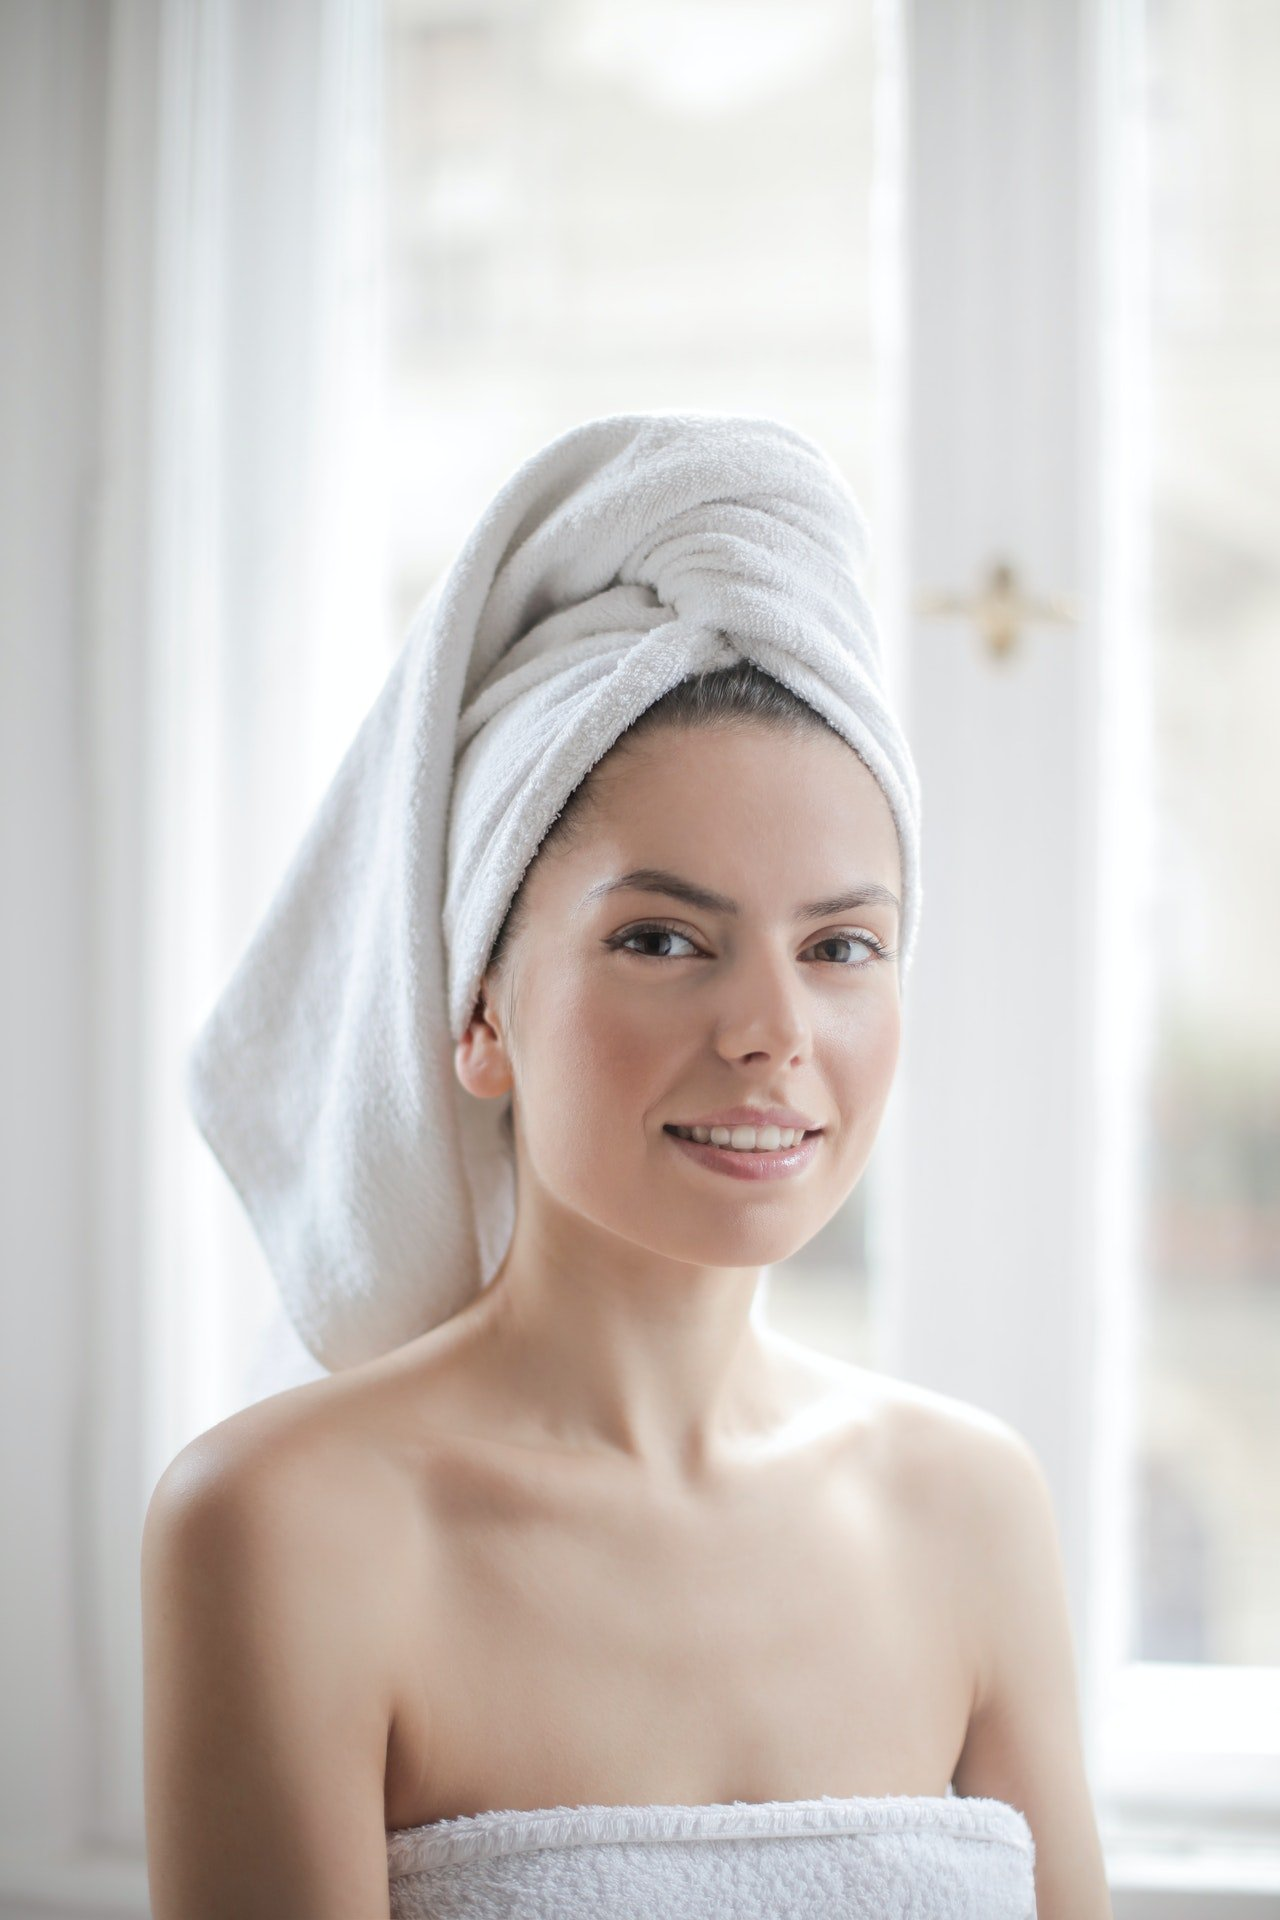 Photo of a woman with white towel on her head | Photo: Pexels